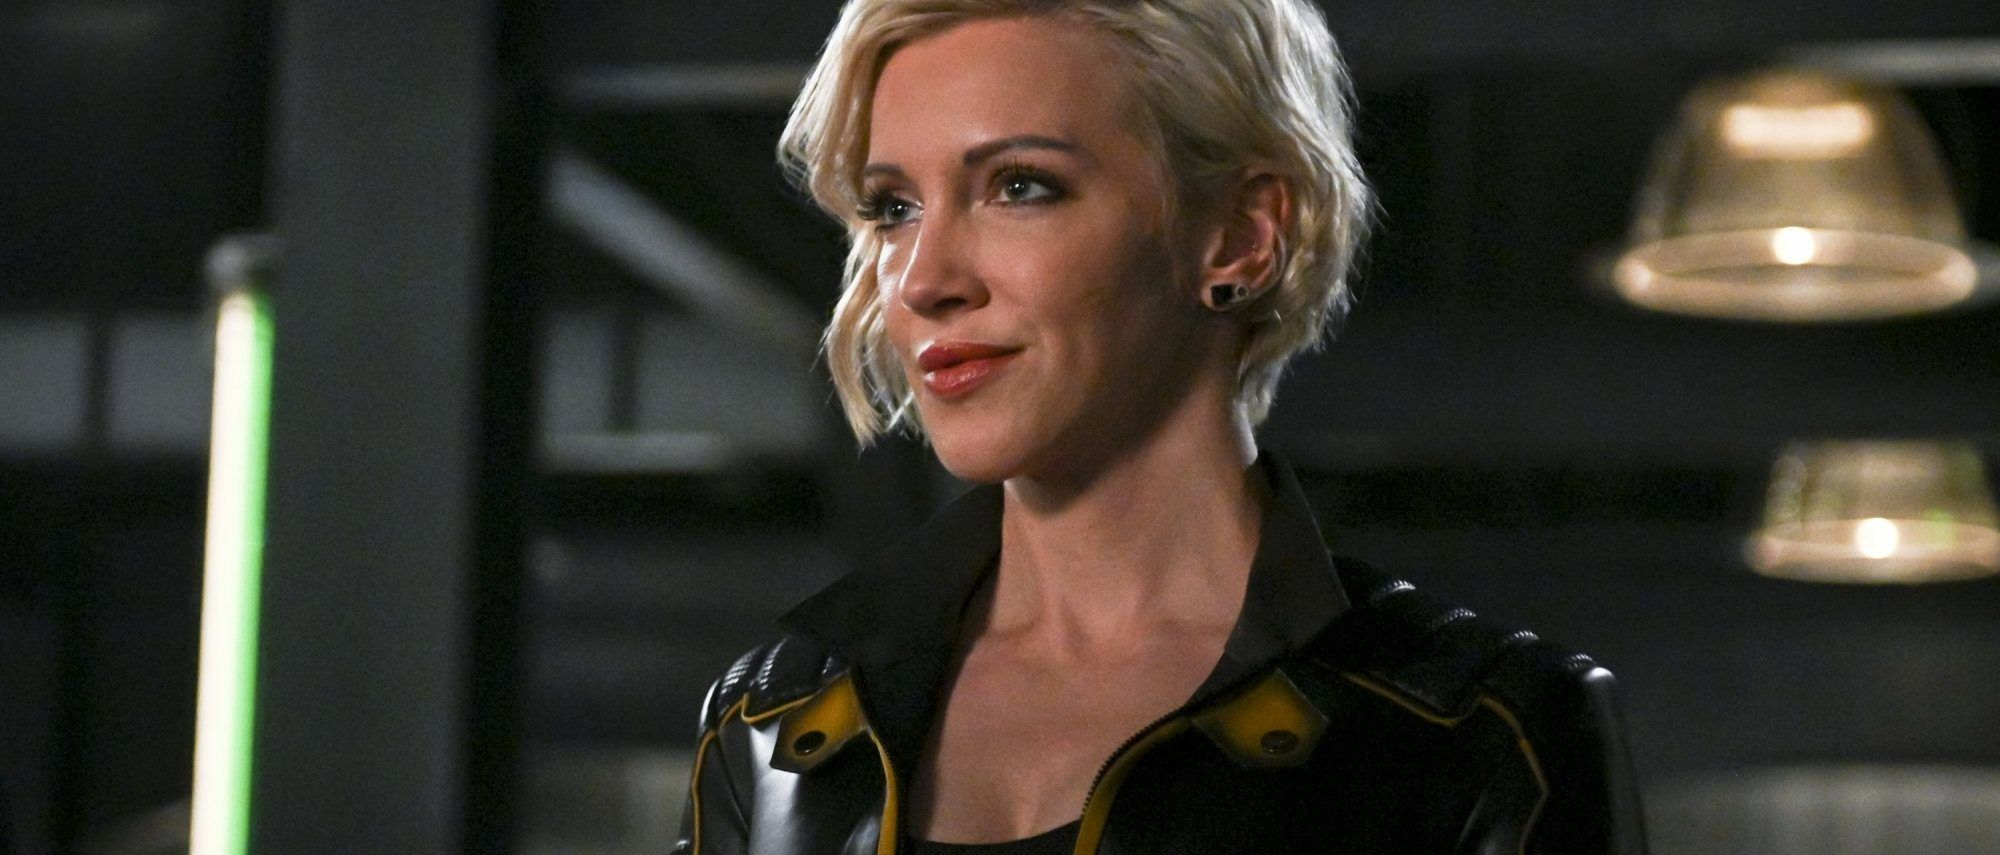 Arrowverse's Katie Cassidy Wants To Play Catwoman Or The Joker In The DC  Universe | Small Screen